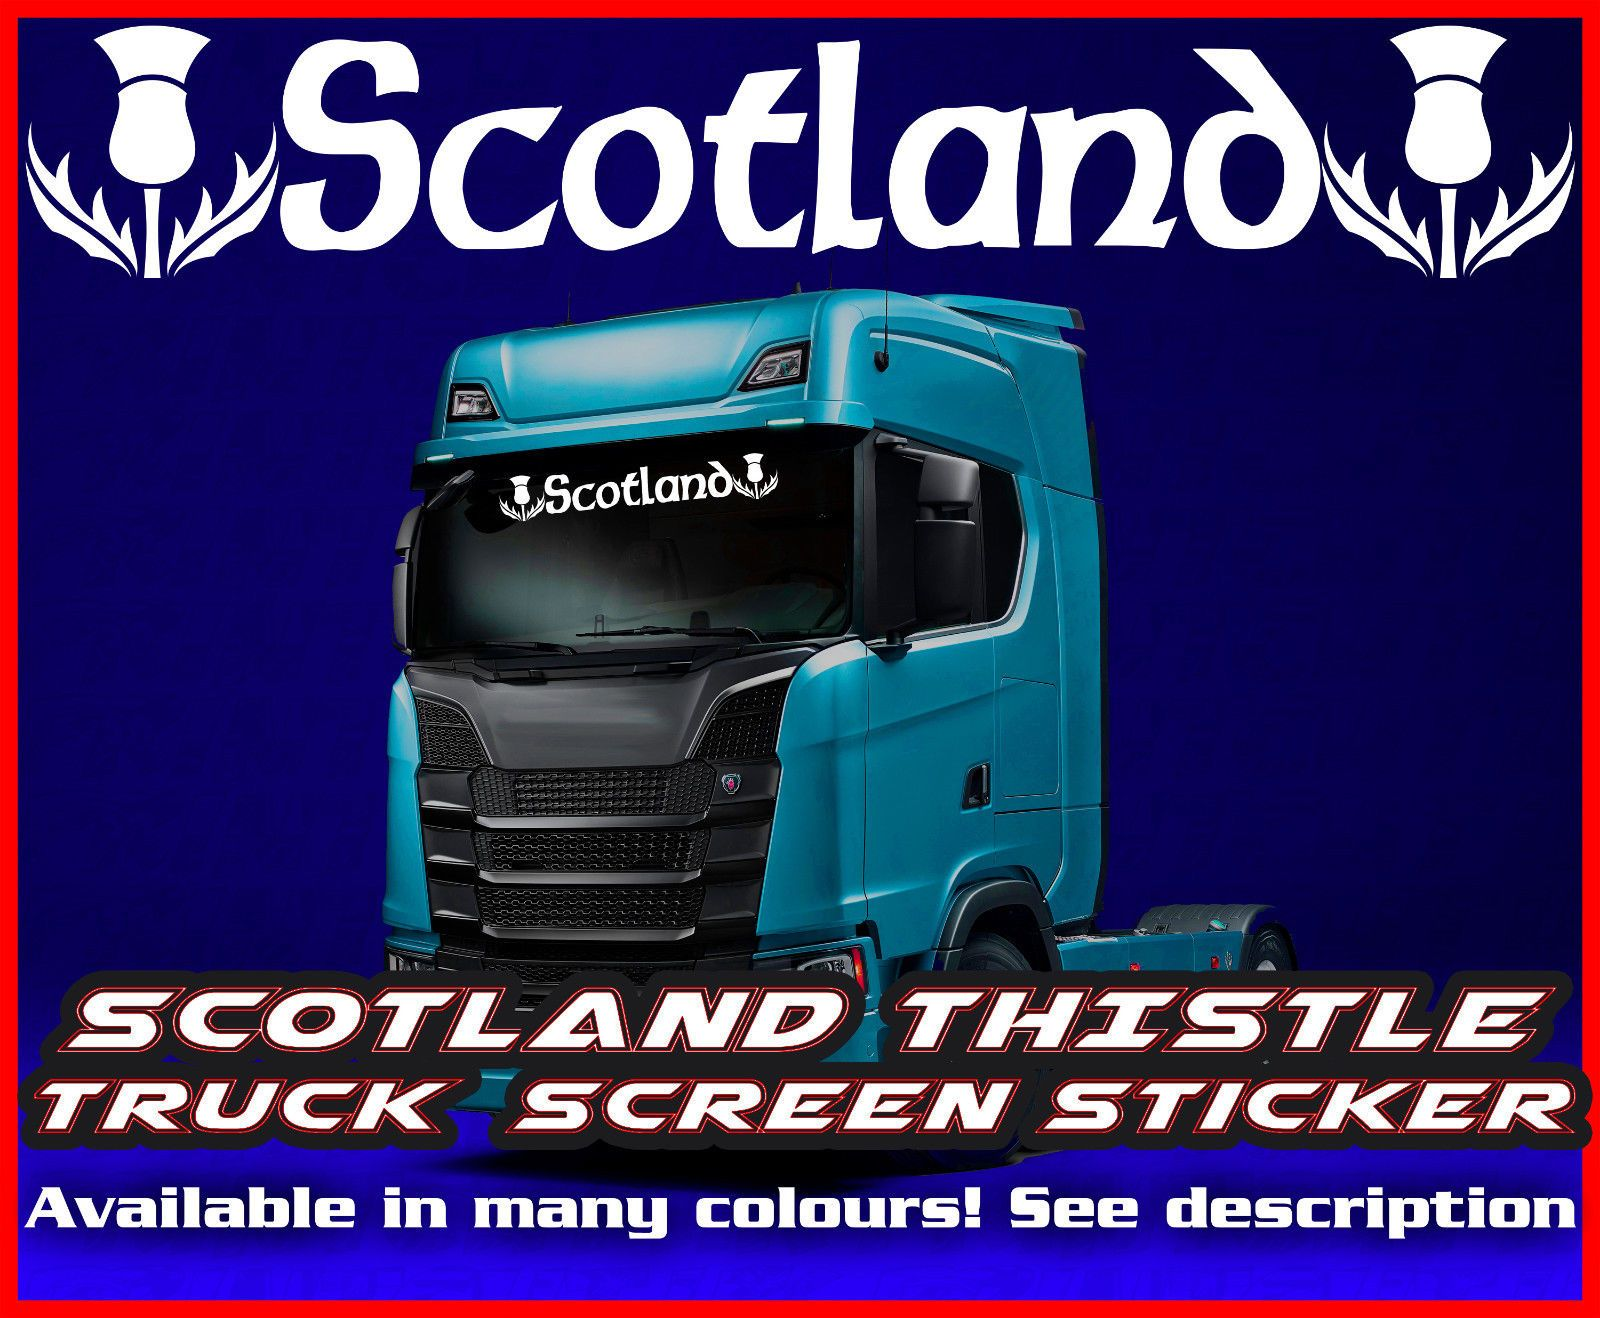 Daf Scania Scotland Scottish Thistle Lorry Truck Screen Sticker Leyland Man Daf Scania